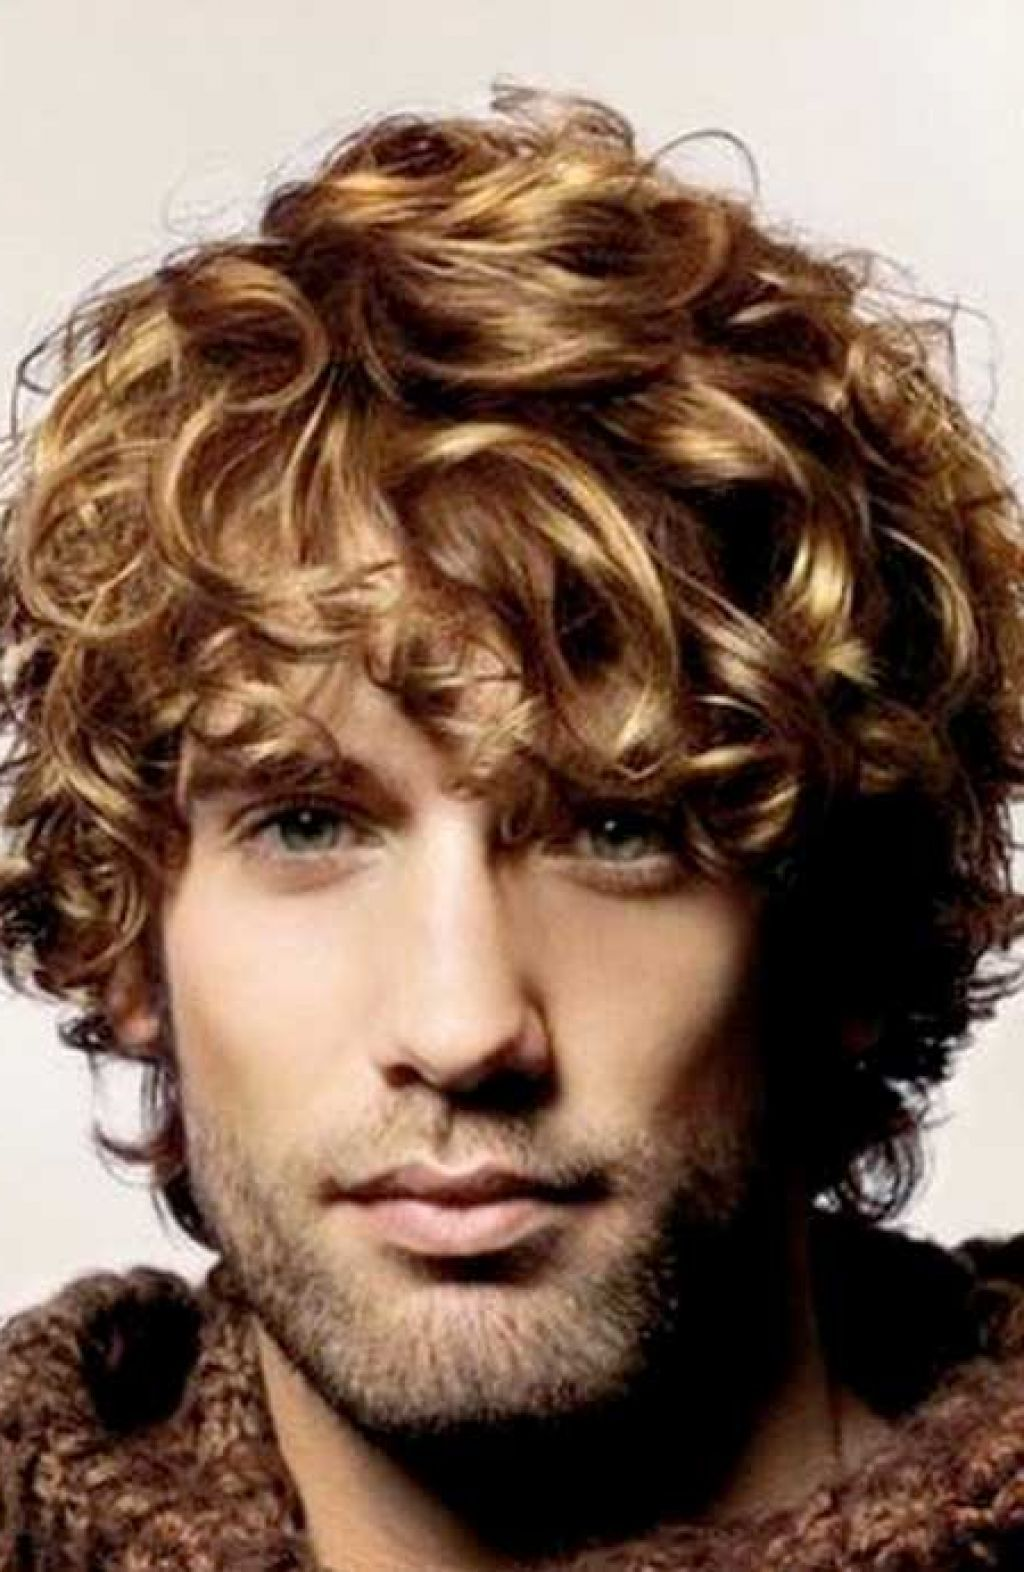 Medium Curly Blonde Hairstyle For Men Long Curly Hair Men